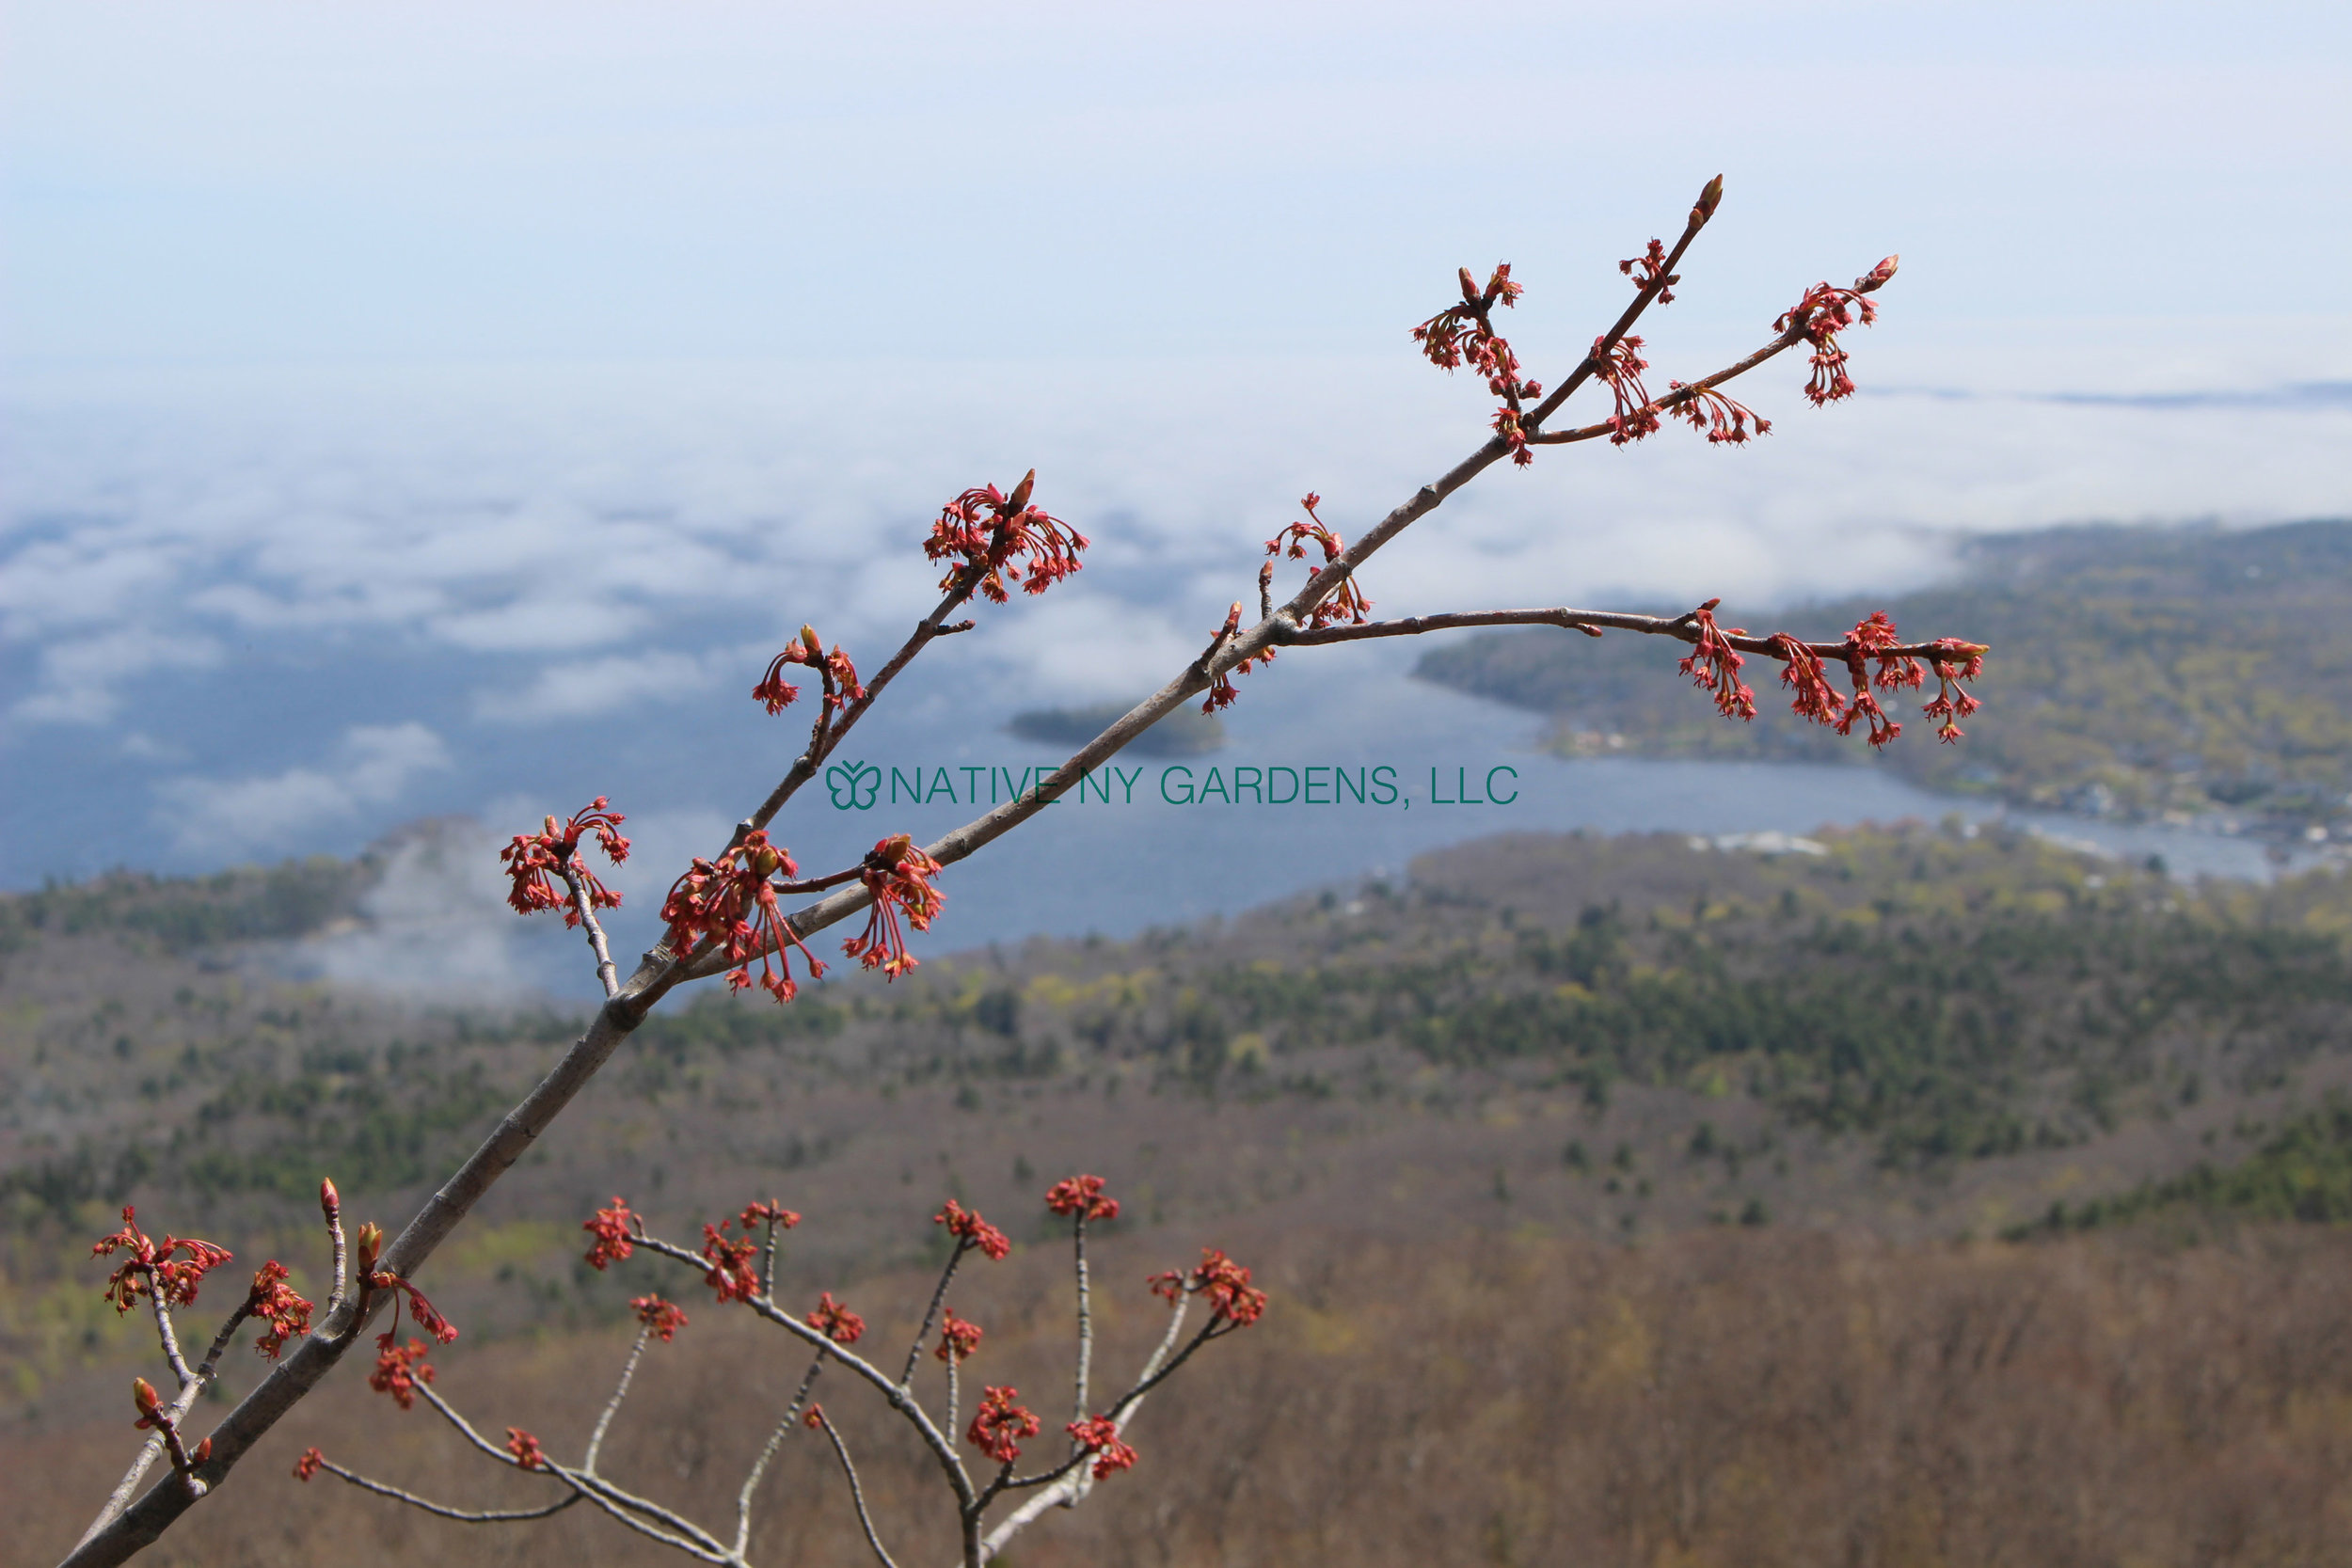 Photo by: Mackenzie Younger 'Red maple blooming on mountain in April'